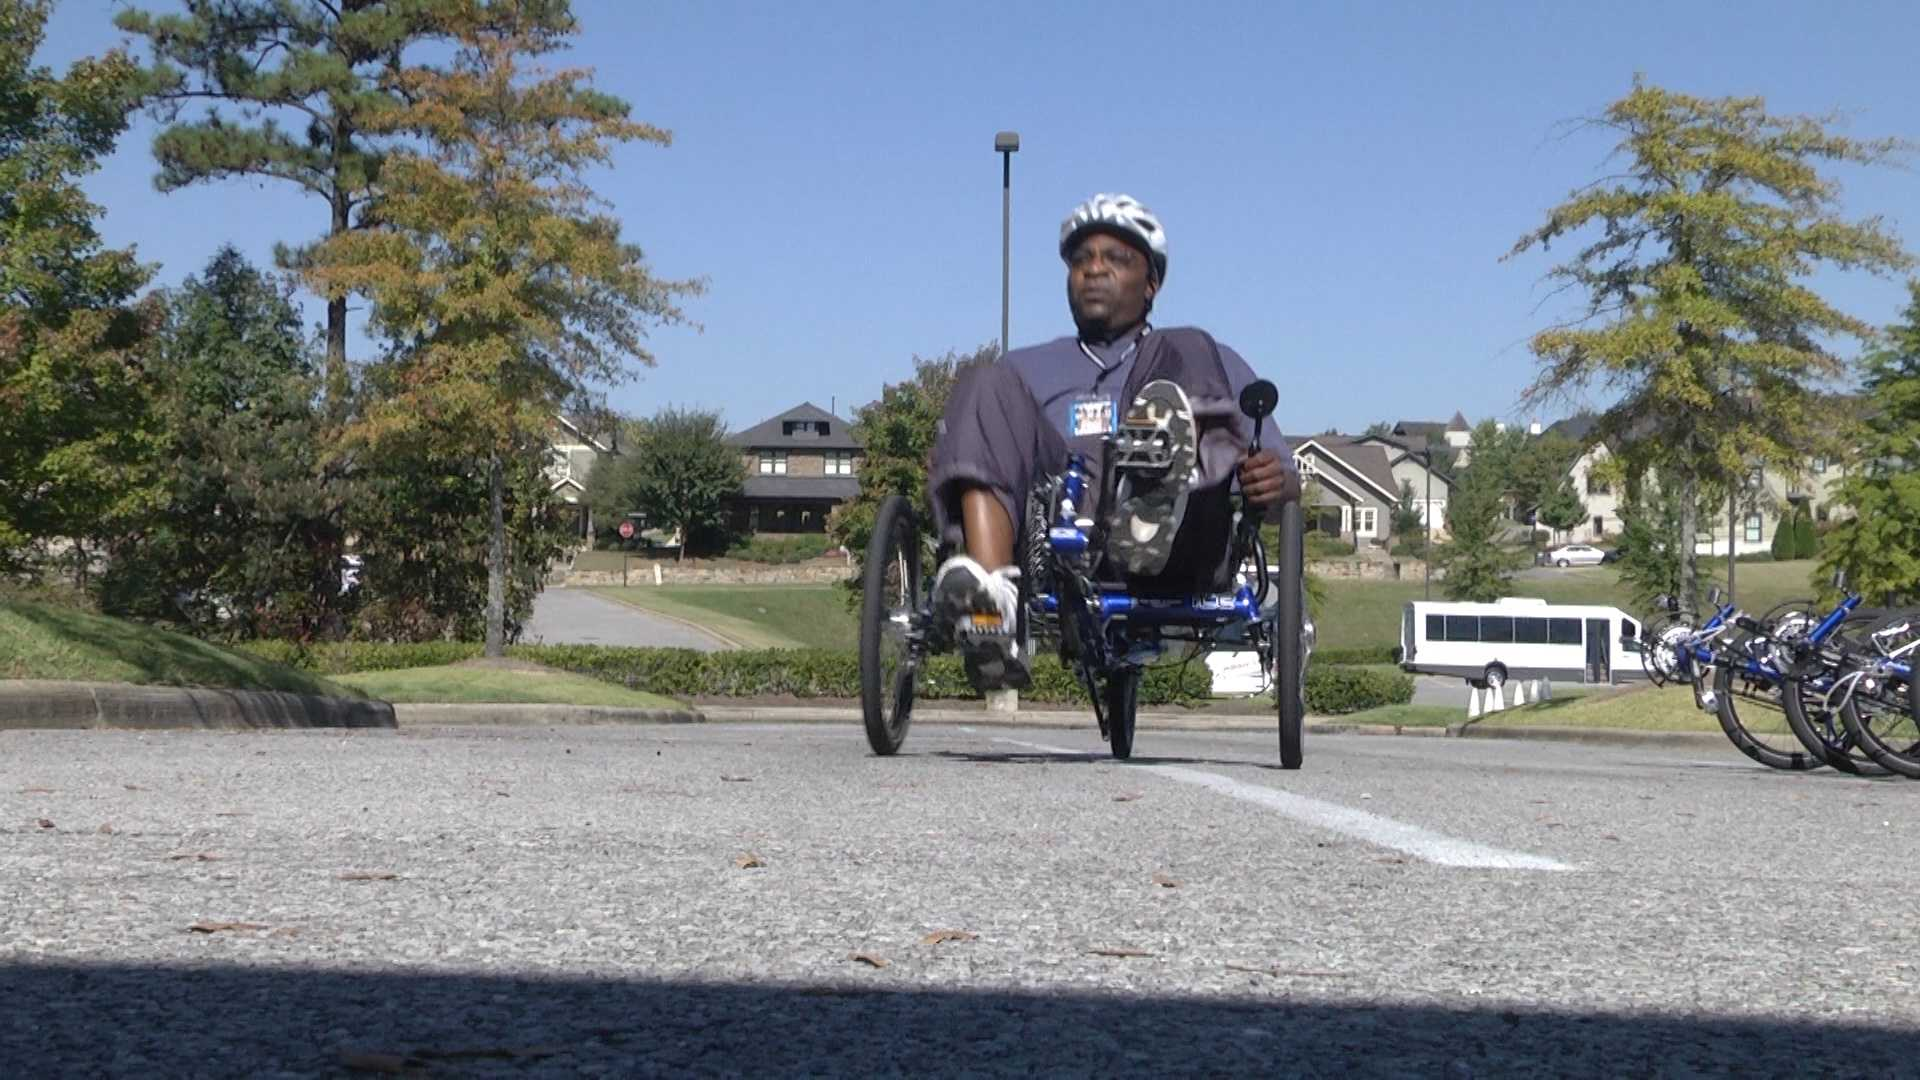 The Wounded Warrior Project will be in Birmingham this weekend for a bicycle ride with soldiers in the area.